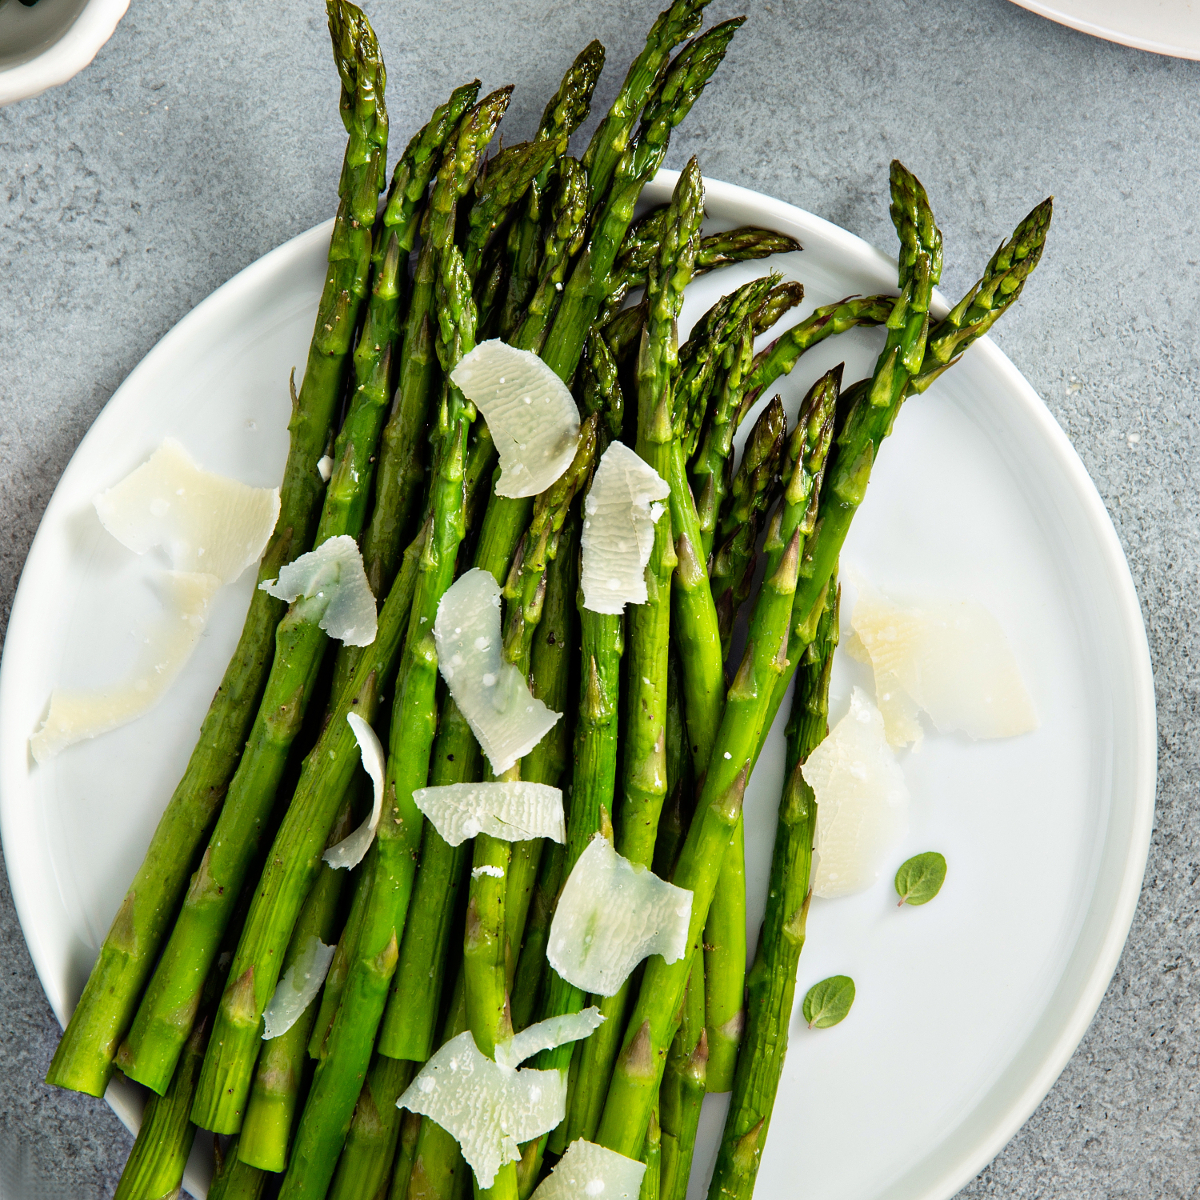 Oven roasted asparagus with shaved parmesan makes the perfect side dish for fish, poultry, meat or pork.